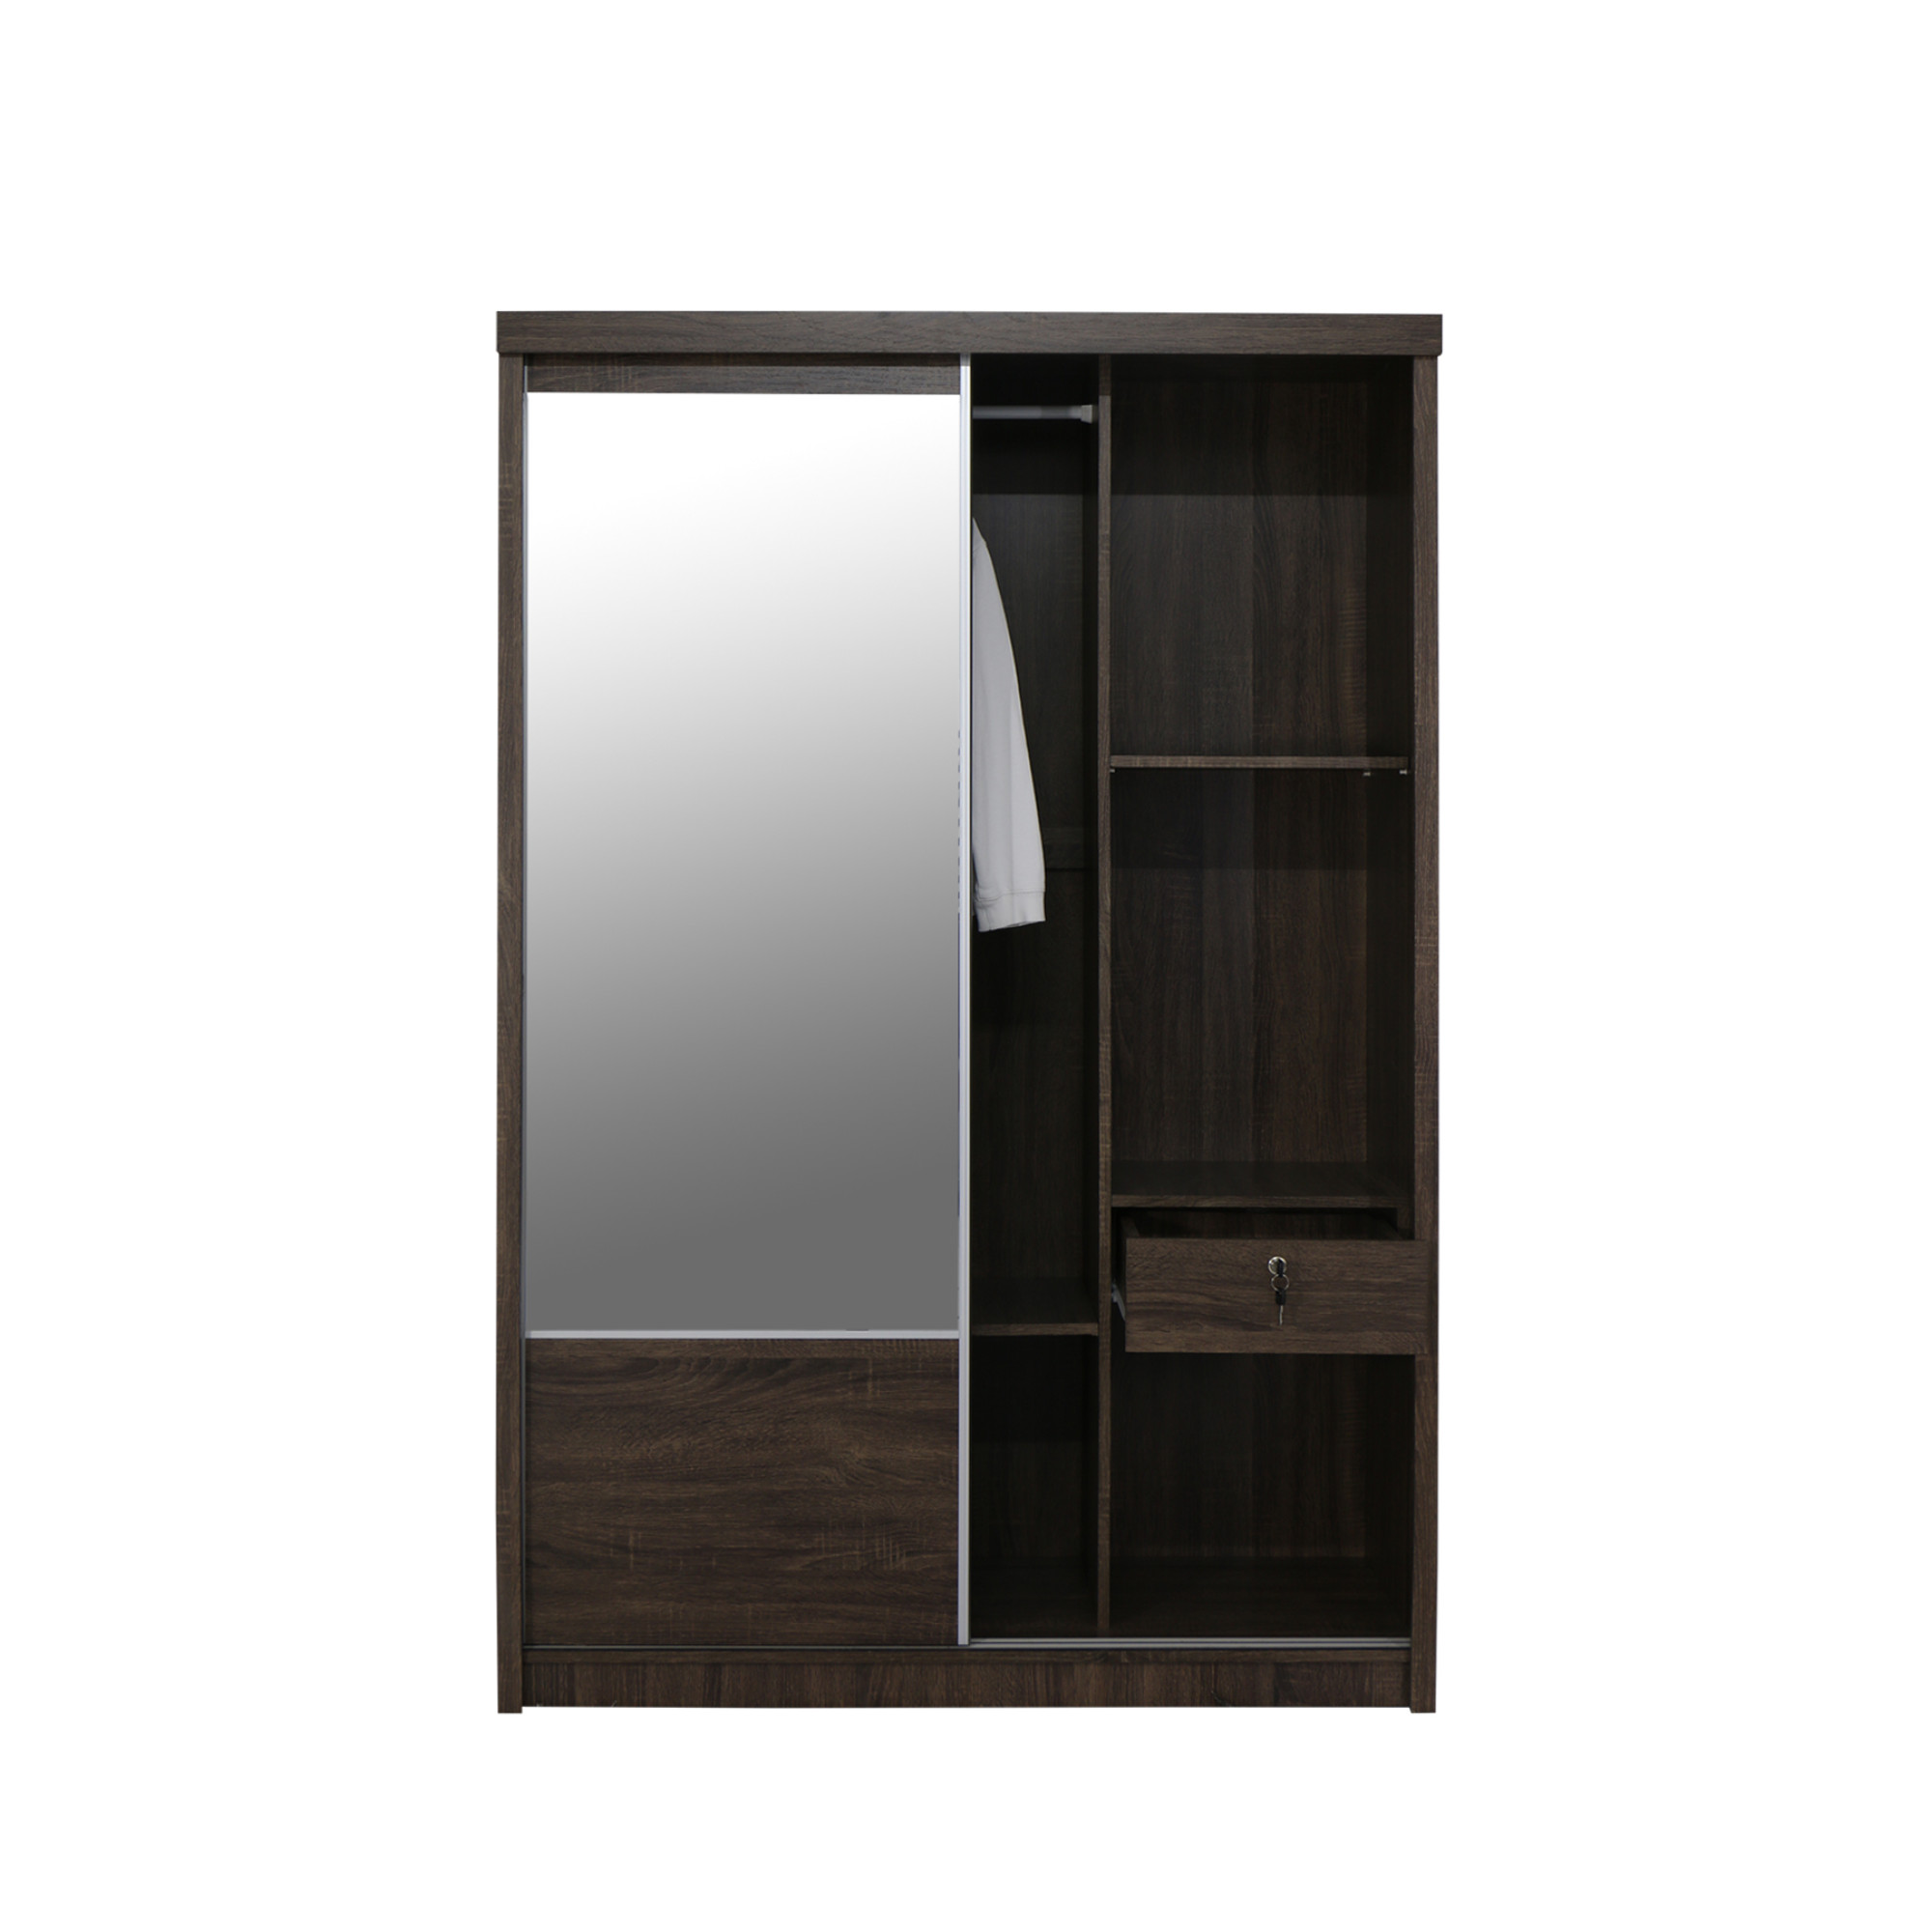 Sopheap Sliding Door Wardrobe 4FT Walnut